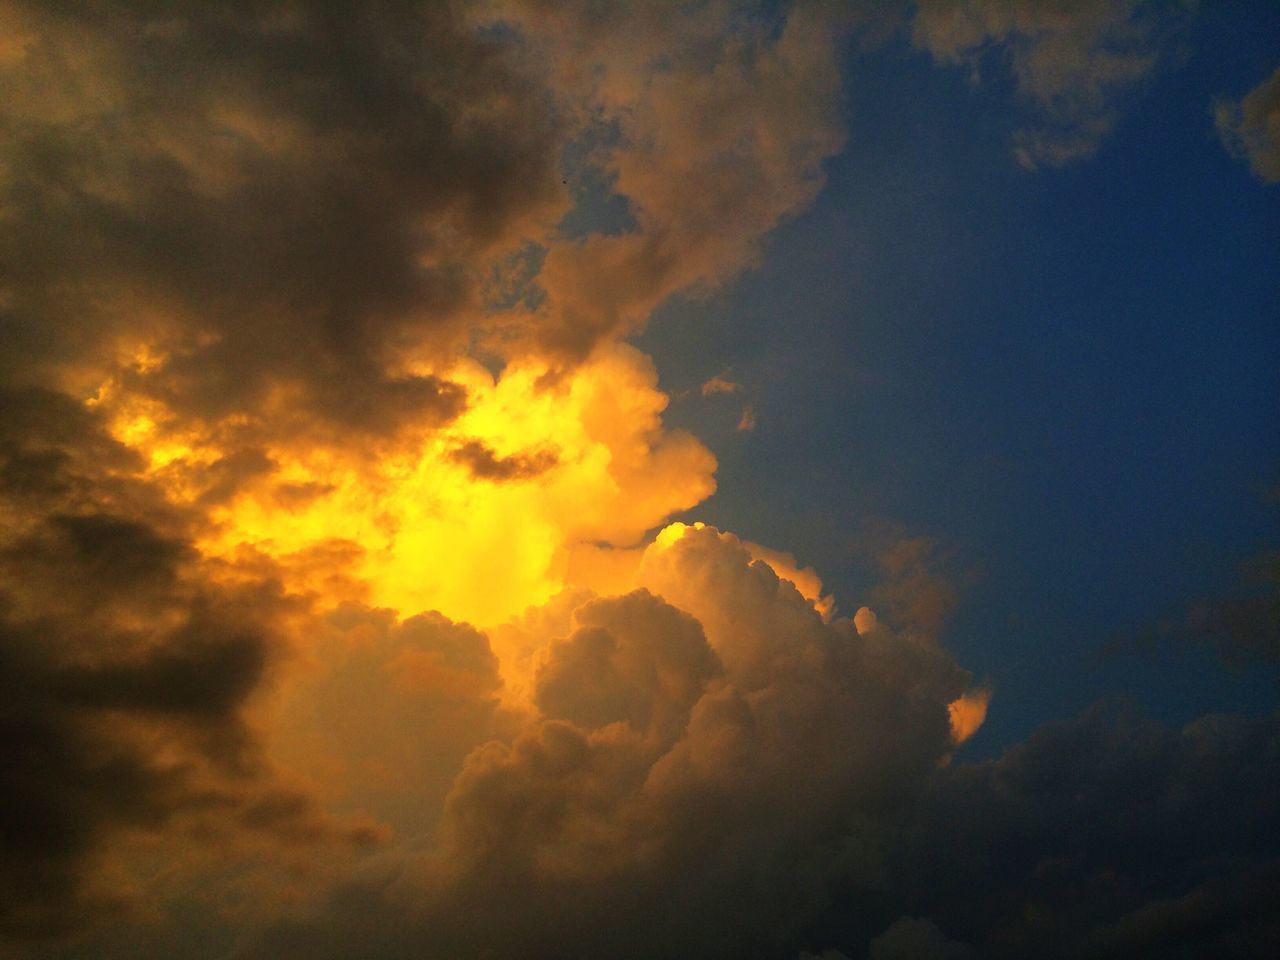 beauty in nature, sky, cloud - sky, nature, scenics, sunset, tranquility, majestic, dramatic sky, tranquil scene, sky only, low angle view, no people, silhouette, outdoors, storm cloud, day